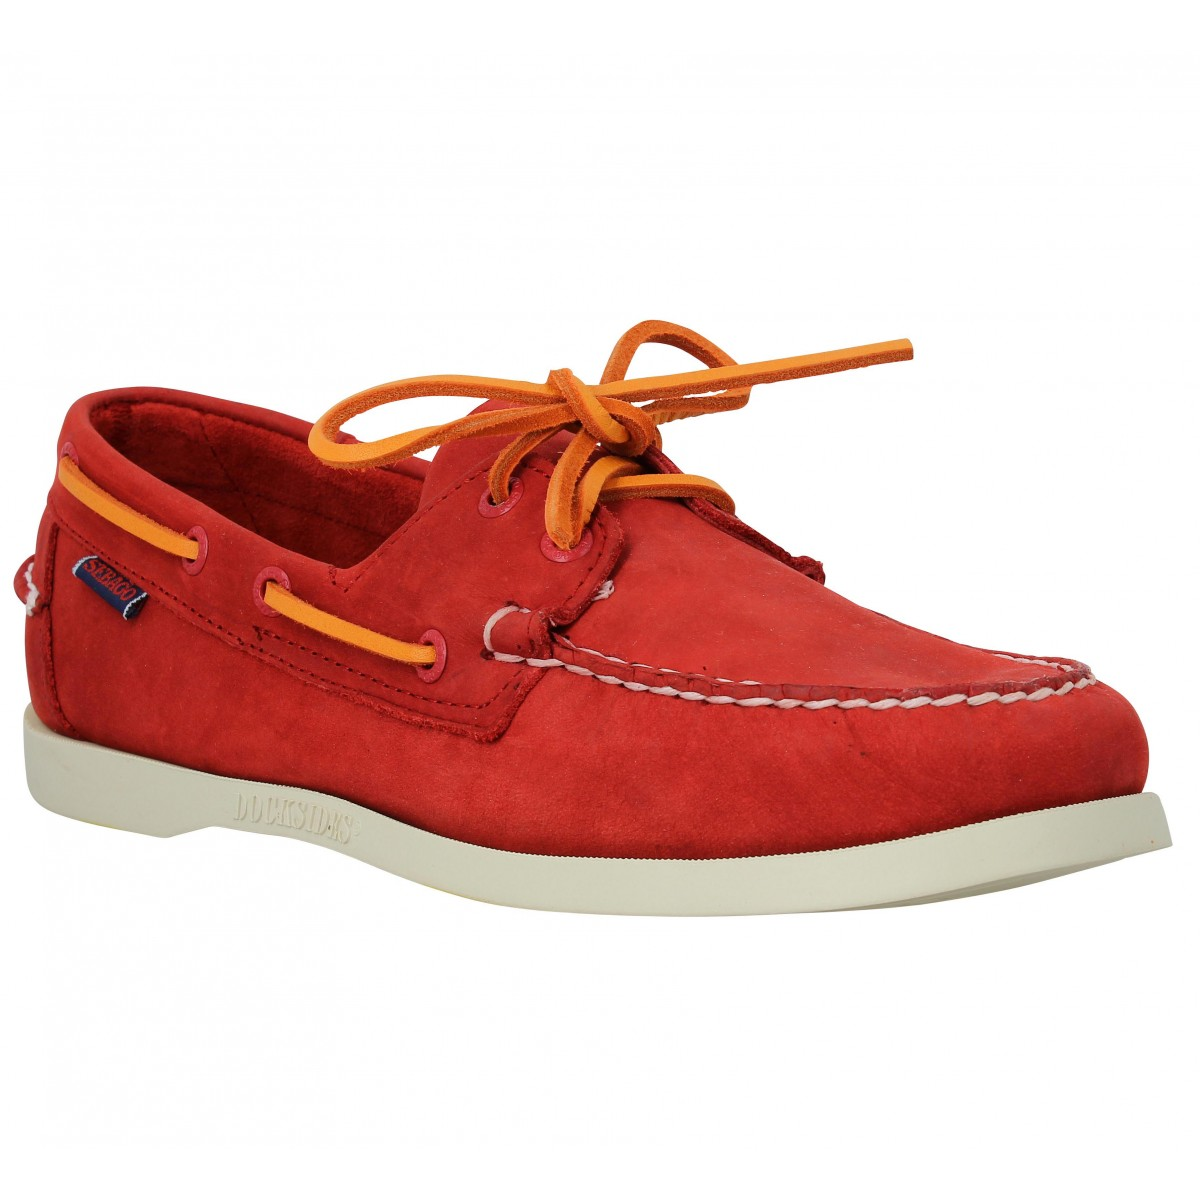 Sebago Homme Docksides Velours-41,5-red